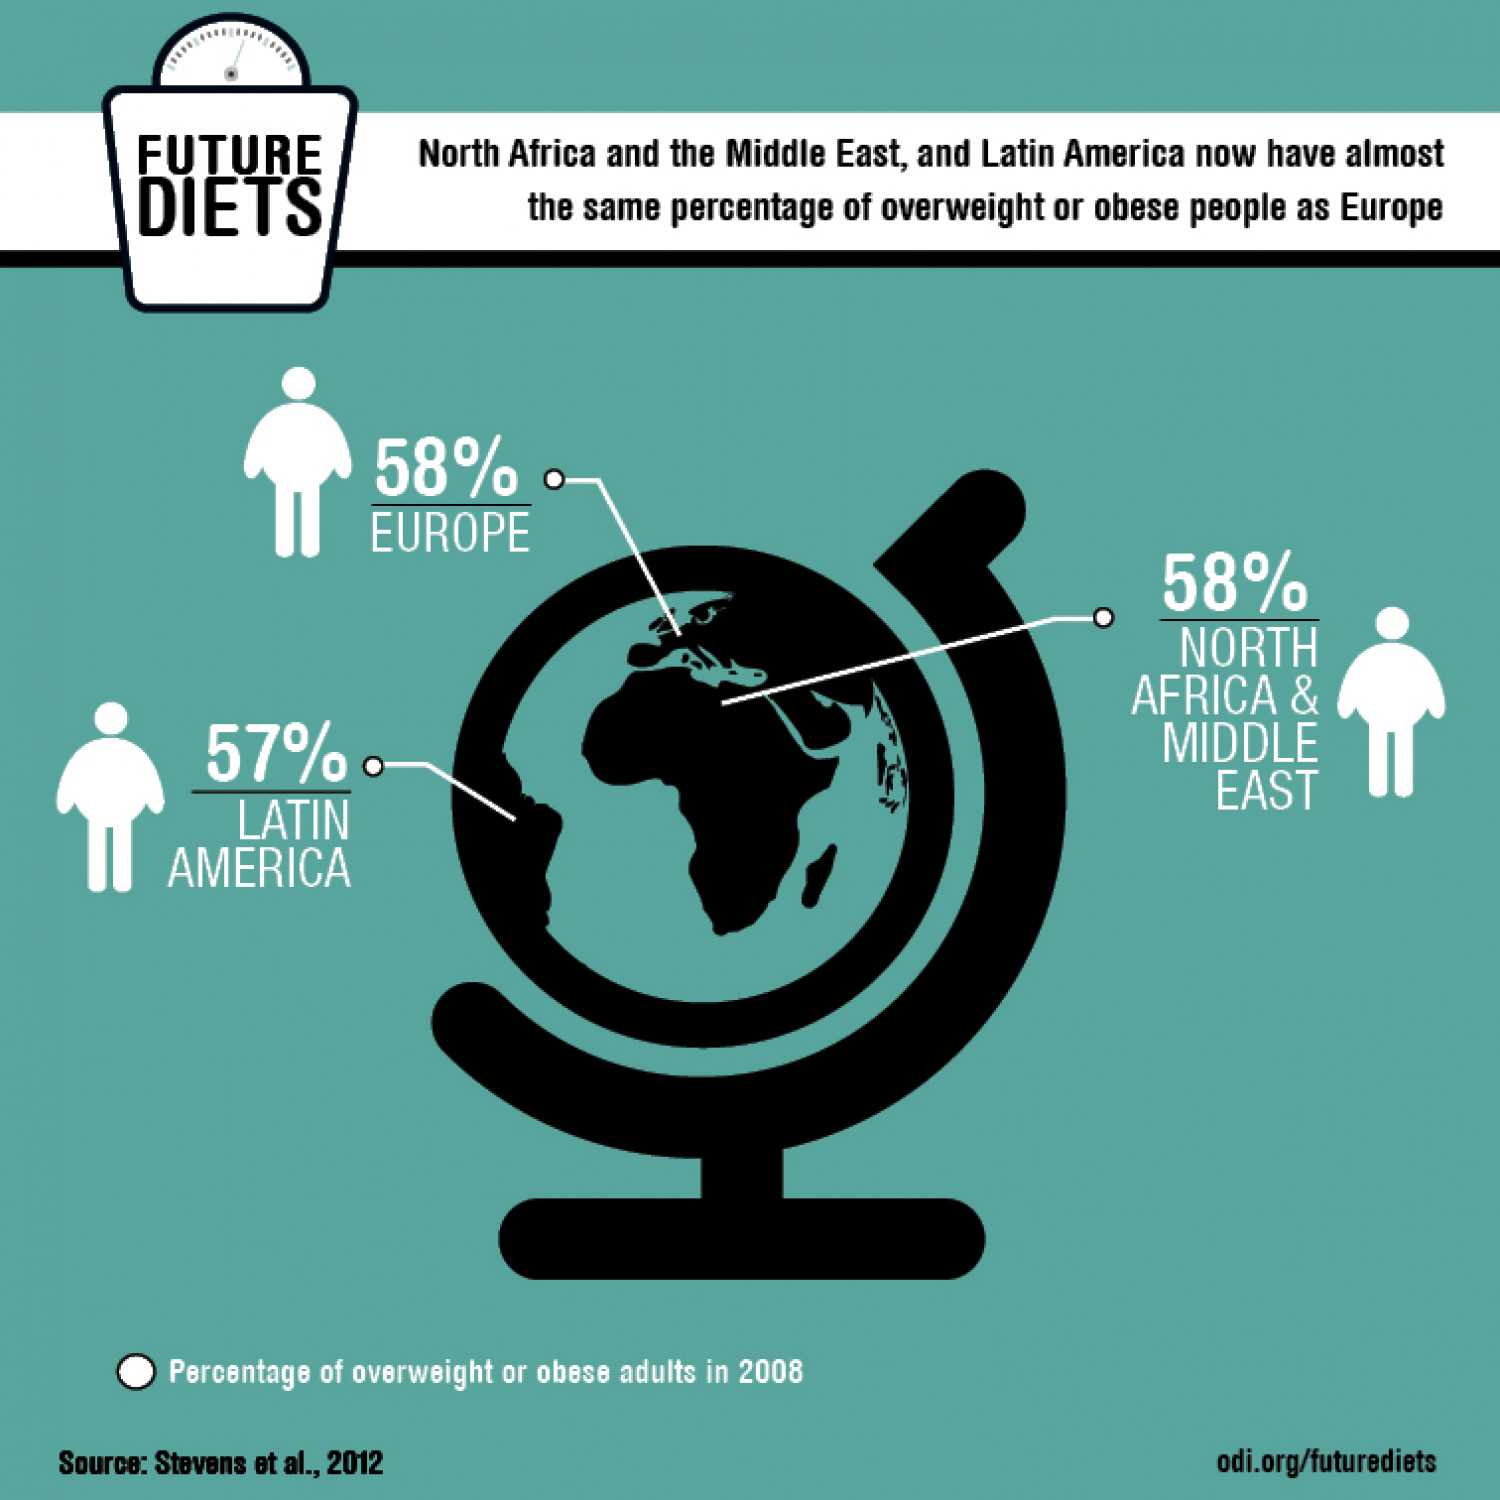 Future diets: Where overweight or obese people live is changing (2) Infographic